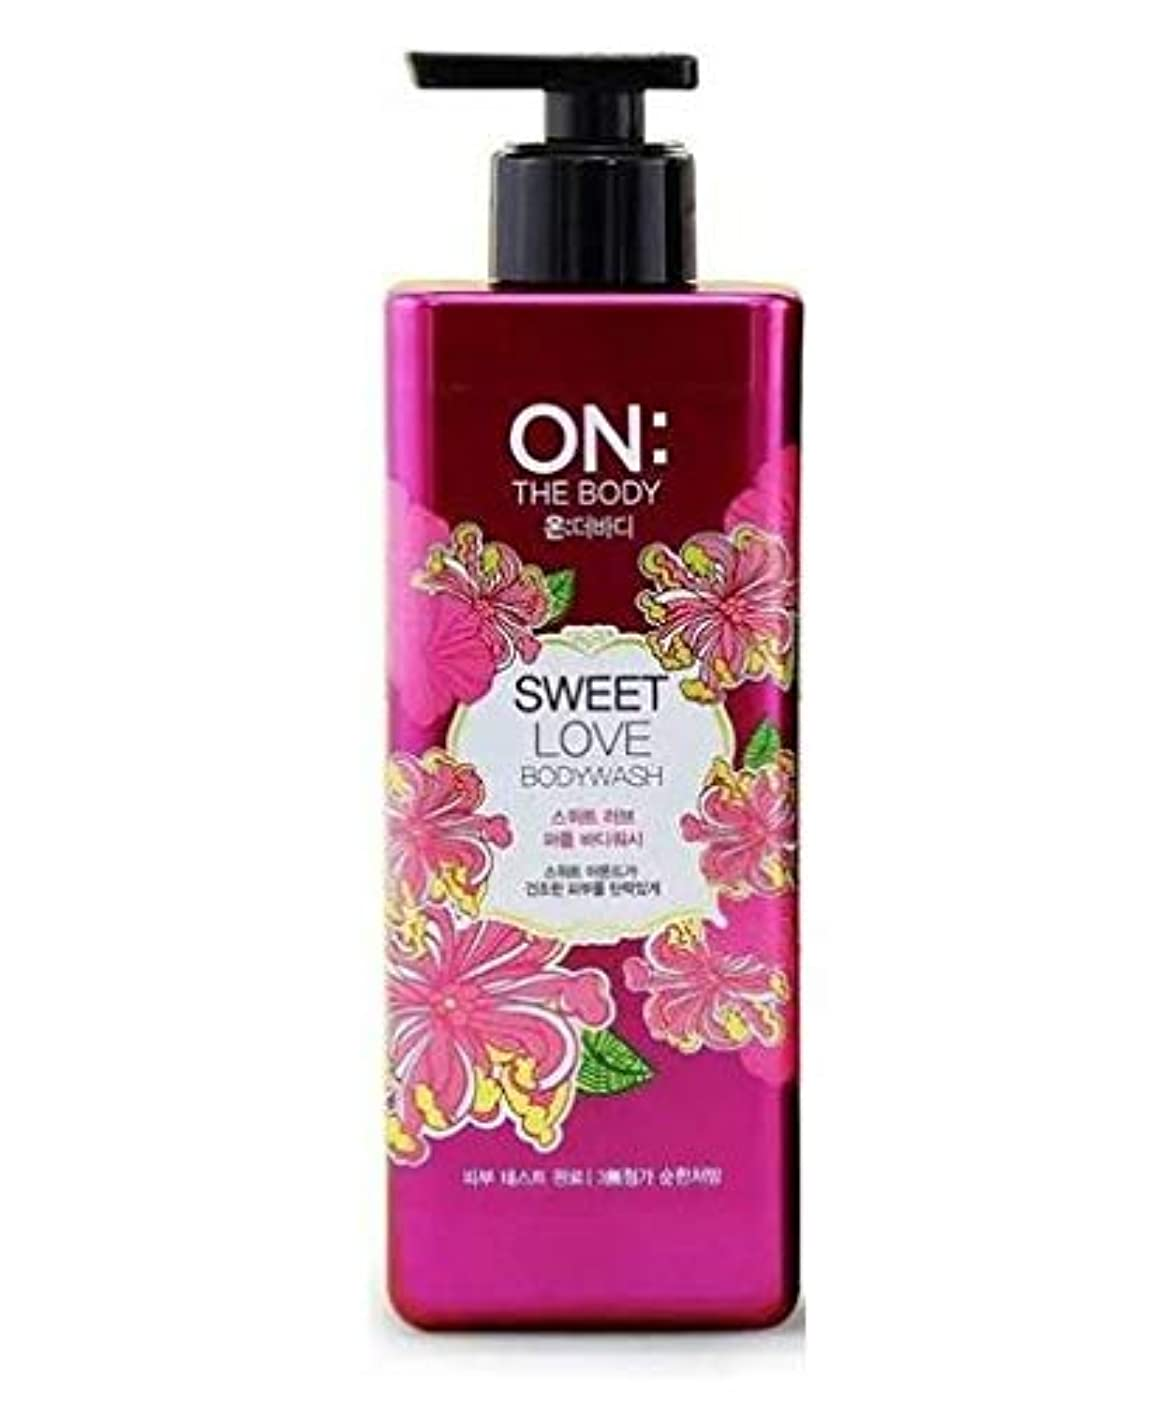 分子引き受ける接触ON THE BODY Sweet Love Body Wash 500g/17.6oz